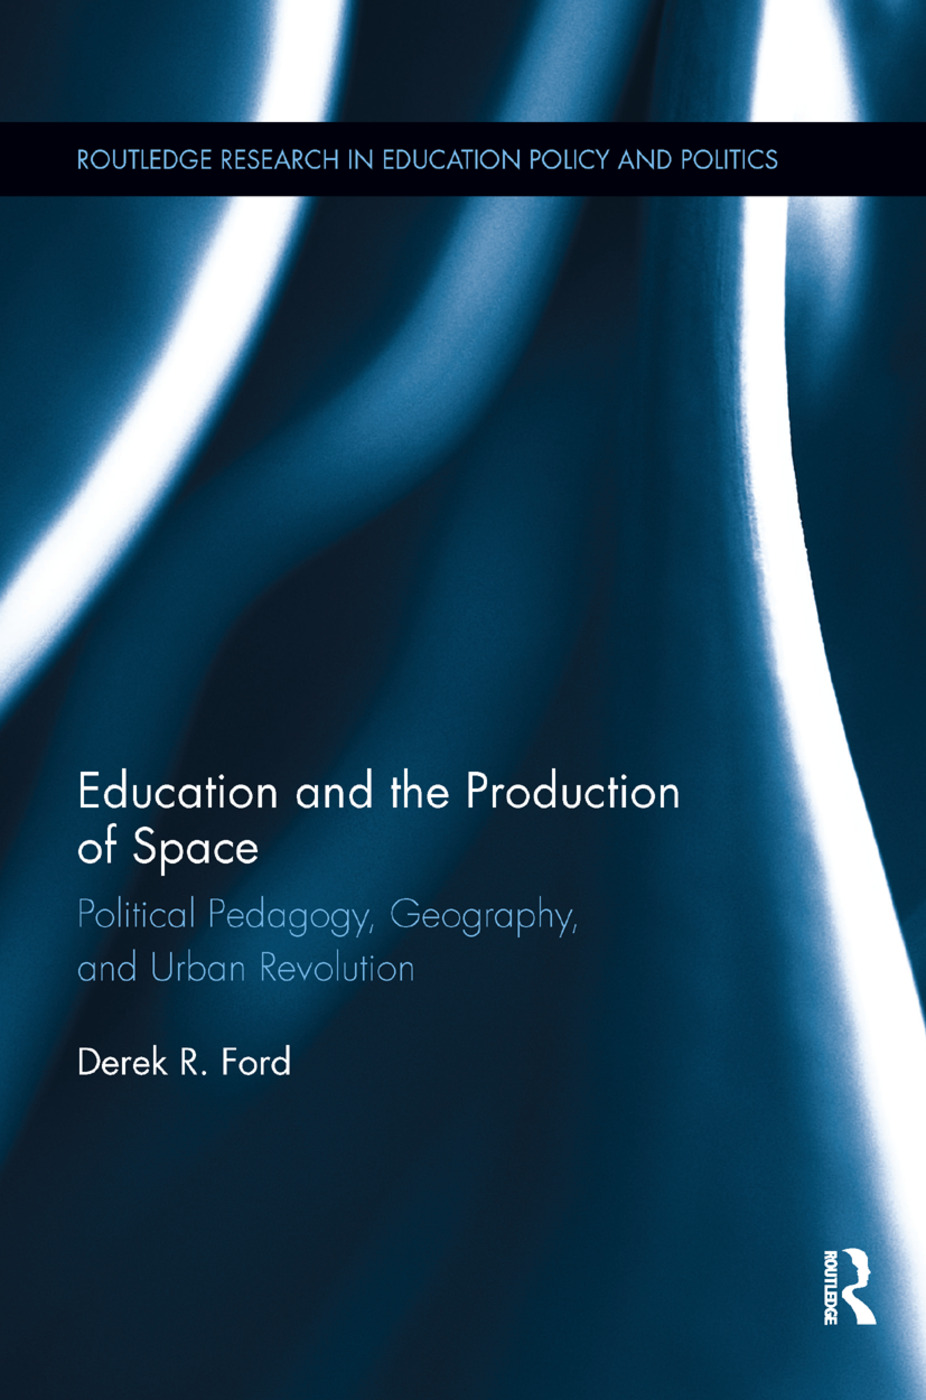 Education and the Production of Space: Political Pedagogy, Geography, and Urban Revolution book cover